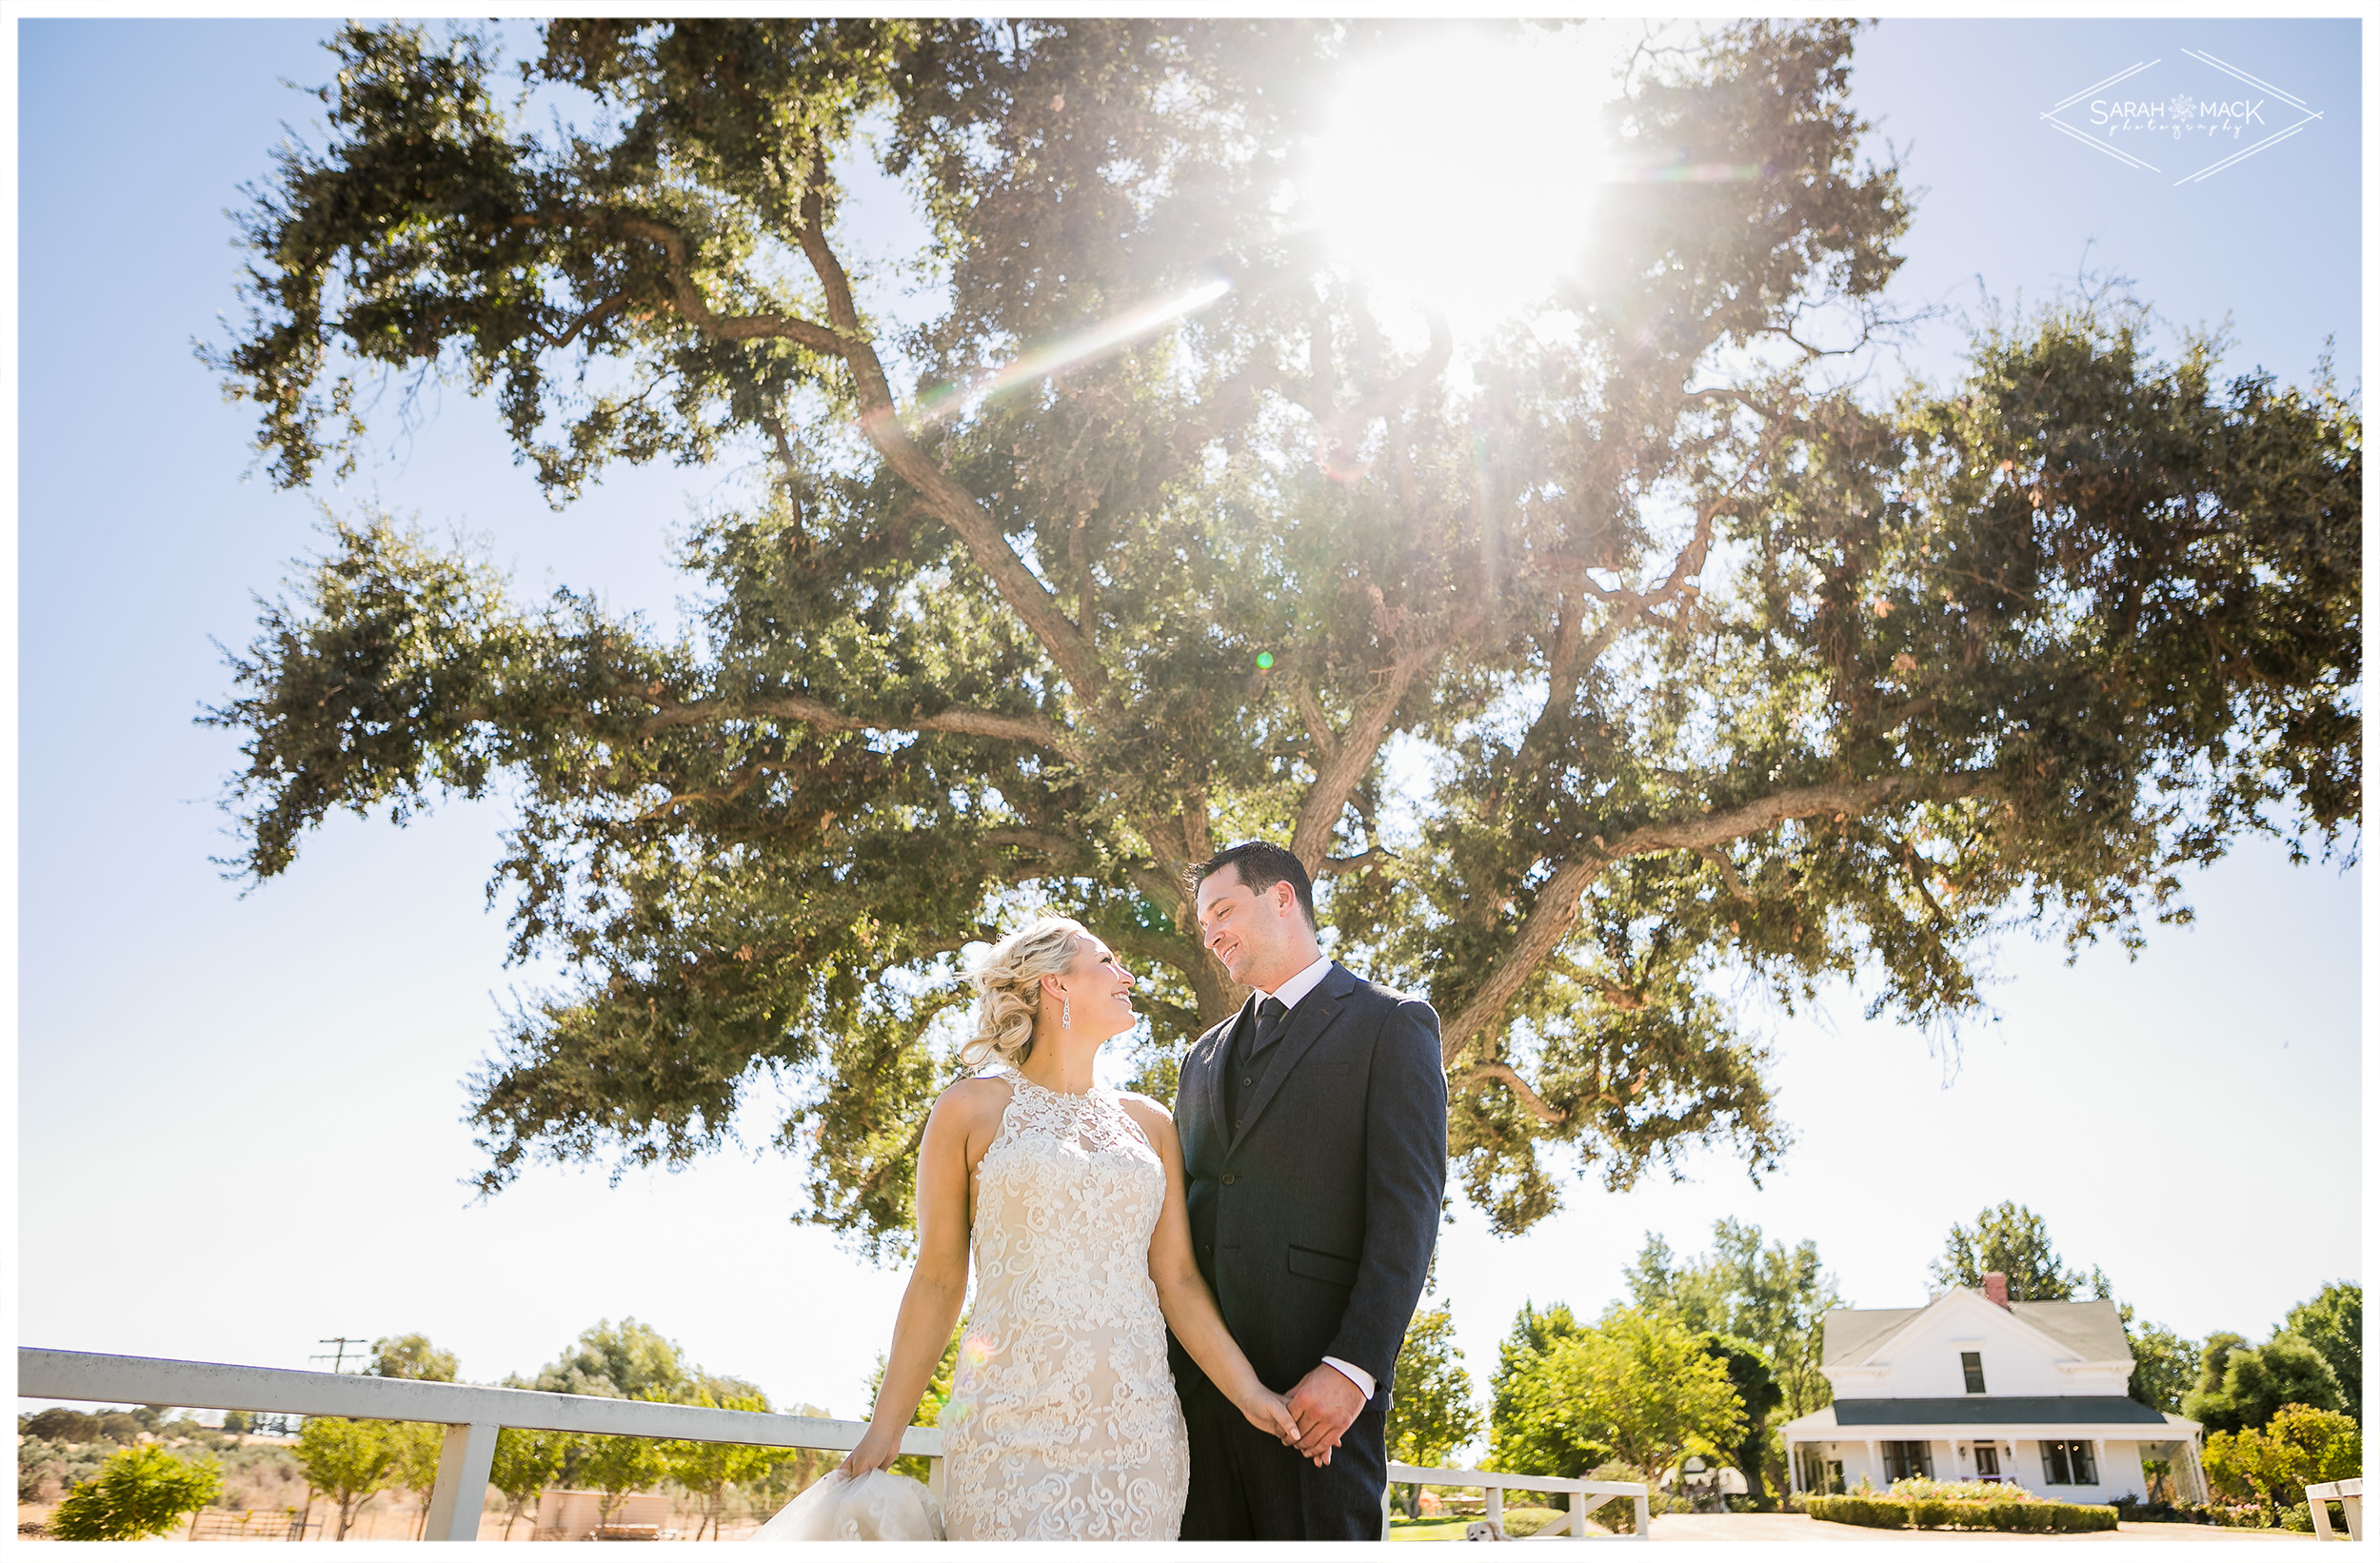 MA-Chandler-Ranch-Paso-Robles-Wedding-Photography-38.jpg